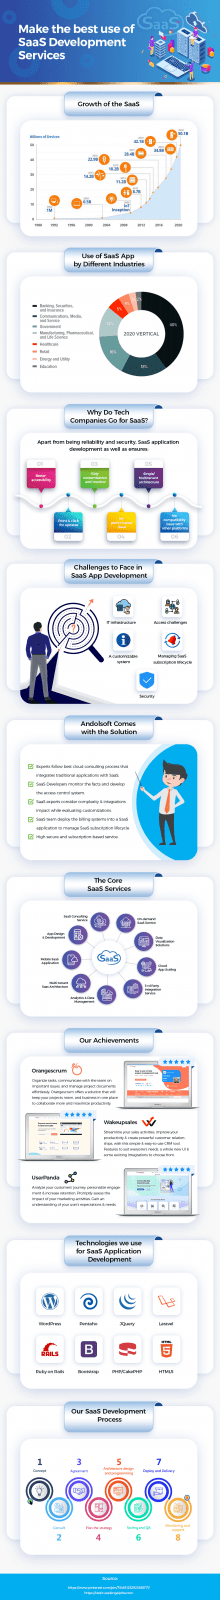 Make the Best Use of SaaS Development Services